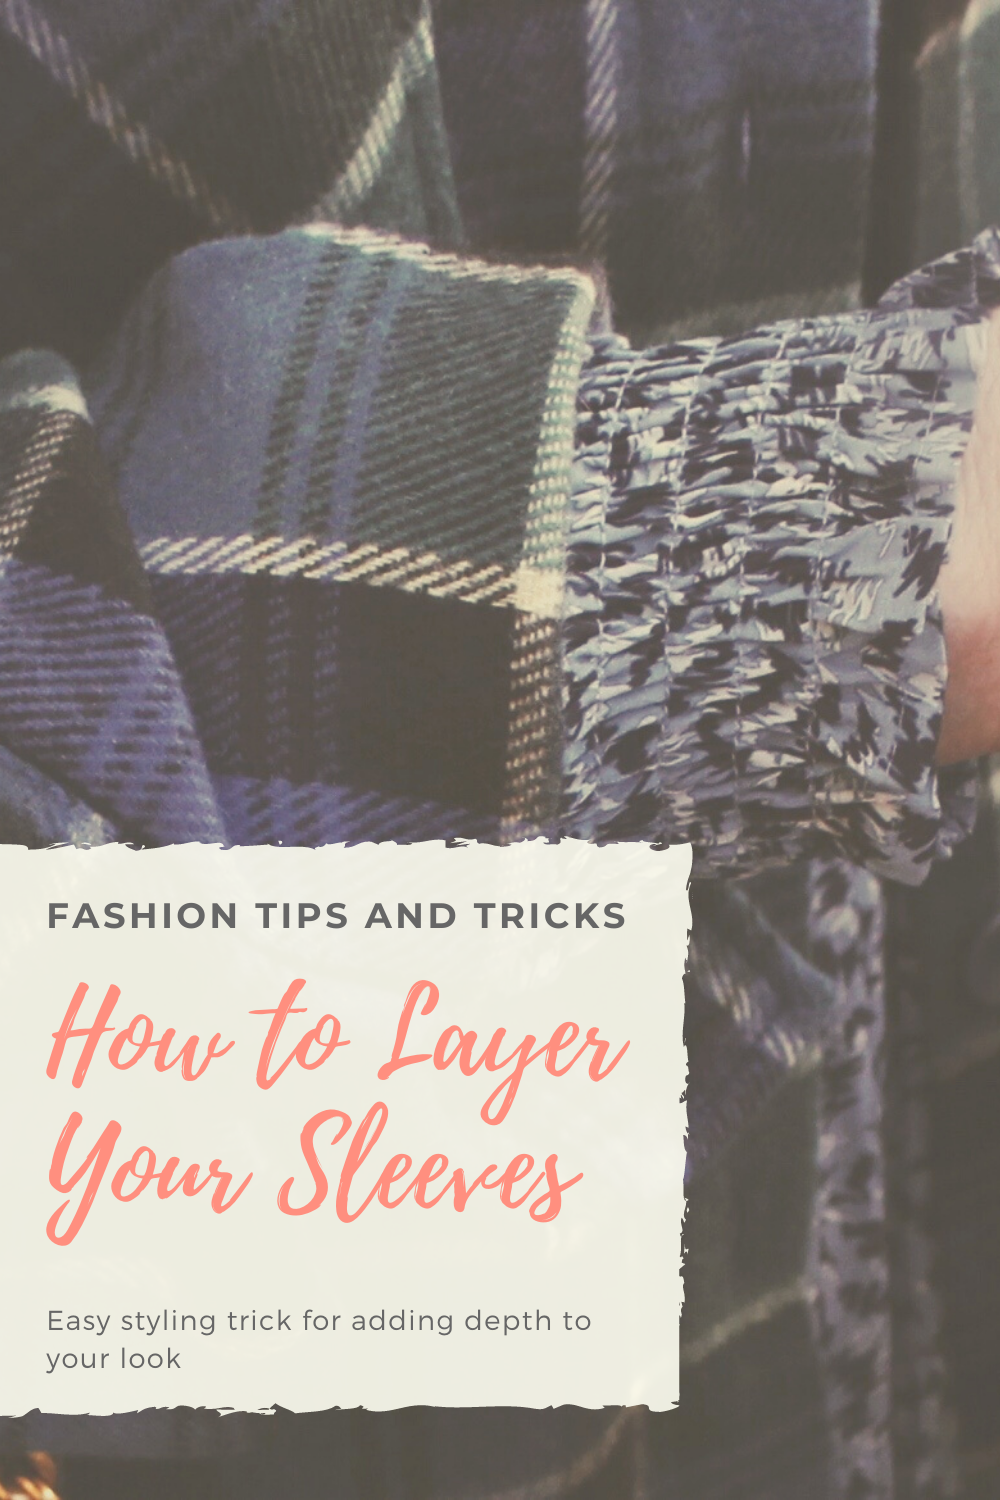 How to layer your sleeves